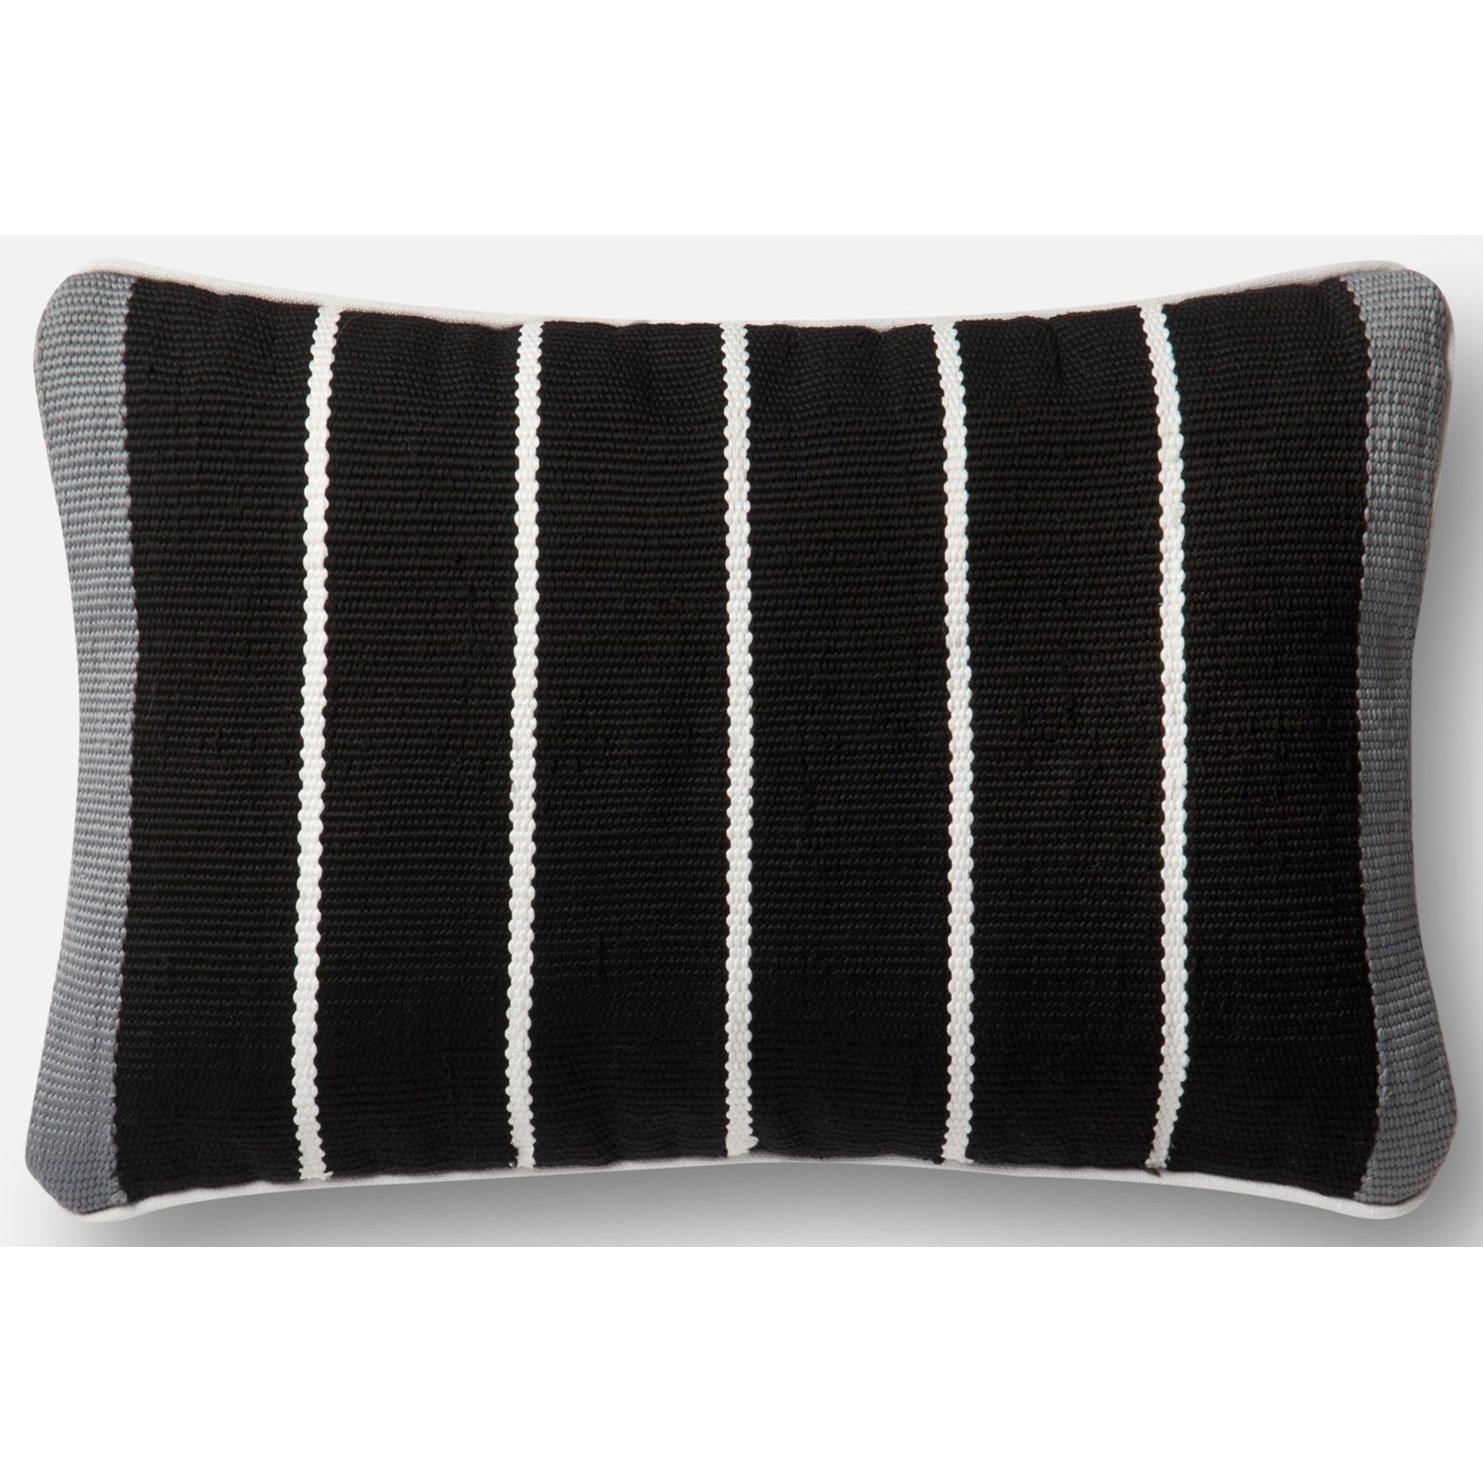 Loloi Poly Set Black Grey Decorative Accent Pillow 13 X 21 Cover Throw Pillows Decorative Pillows Inserts Covers